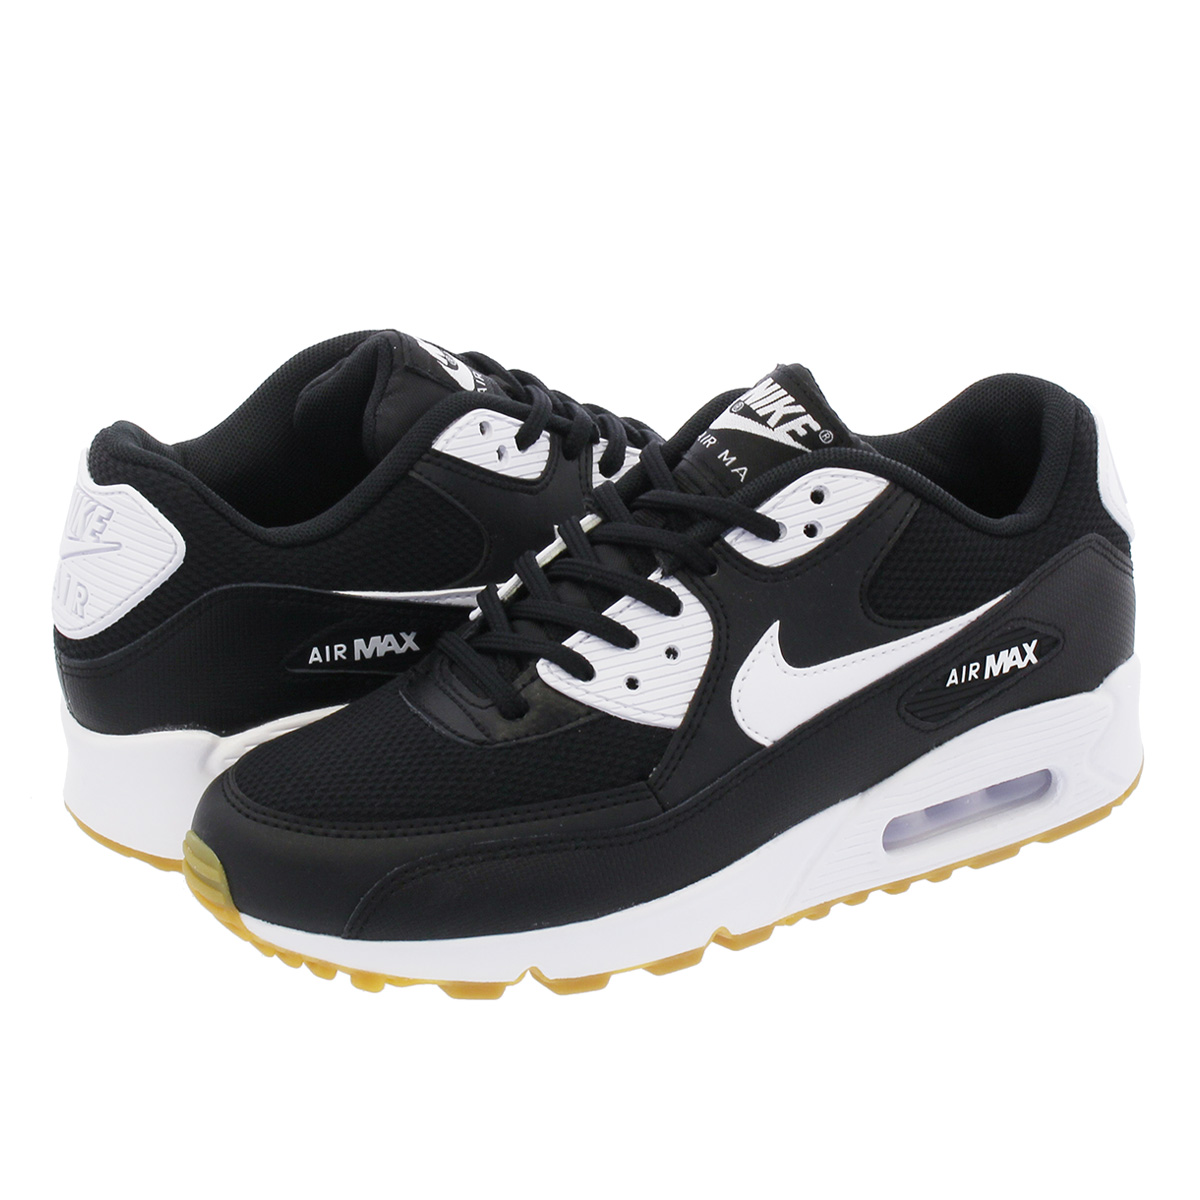 NIKE WMNS AIR MAX 90 ナイキ ウィメンズ エア マックス 90 BLACK/WHITE/GUM LIGHT BROWN 325213-055